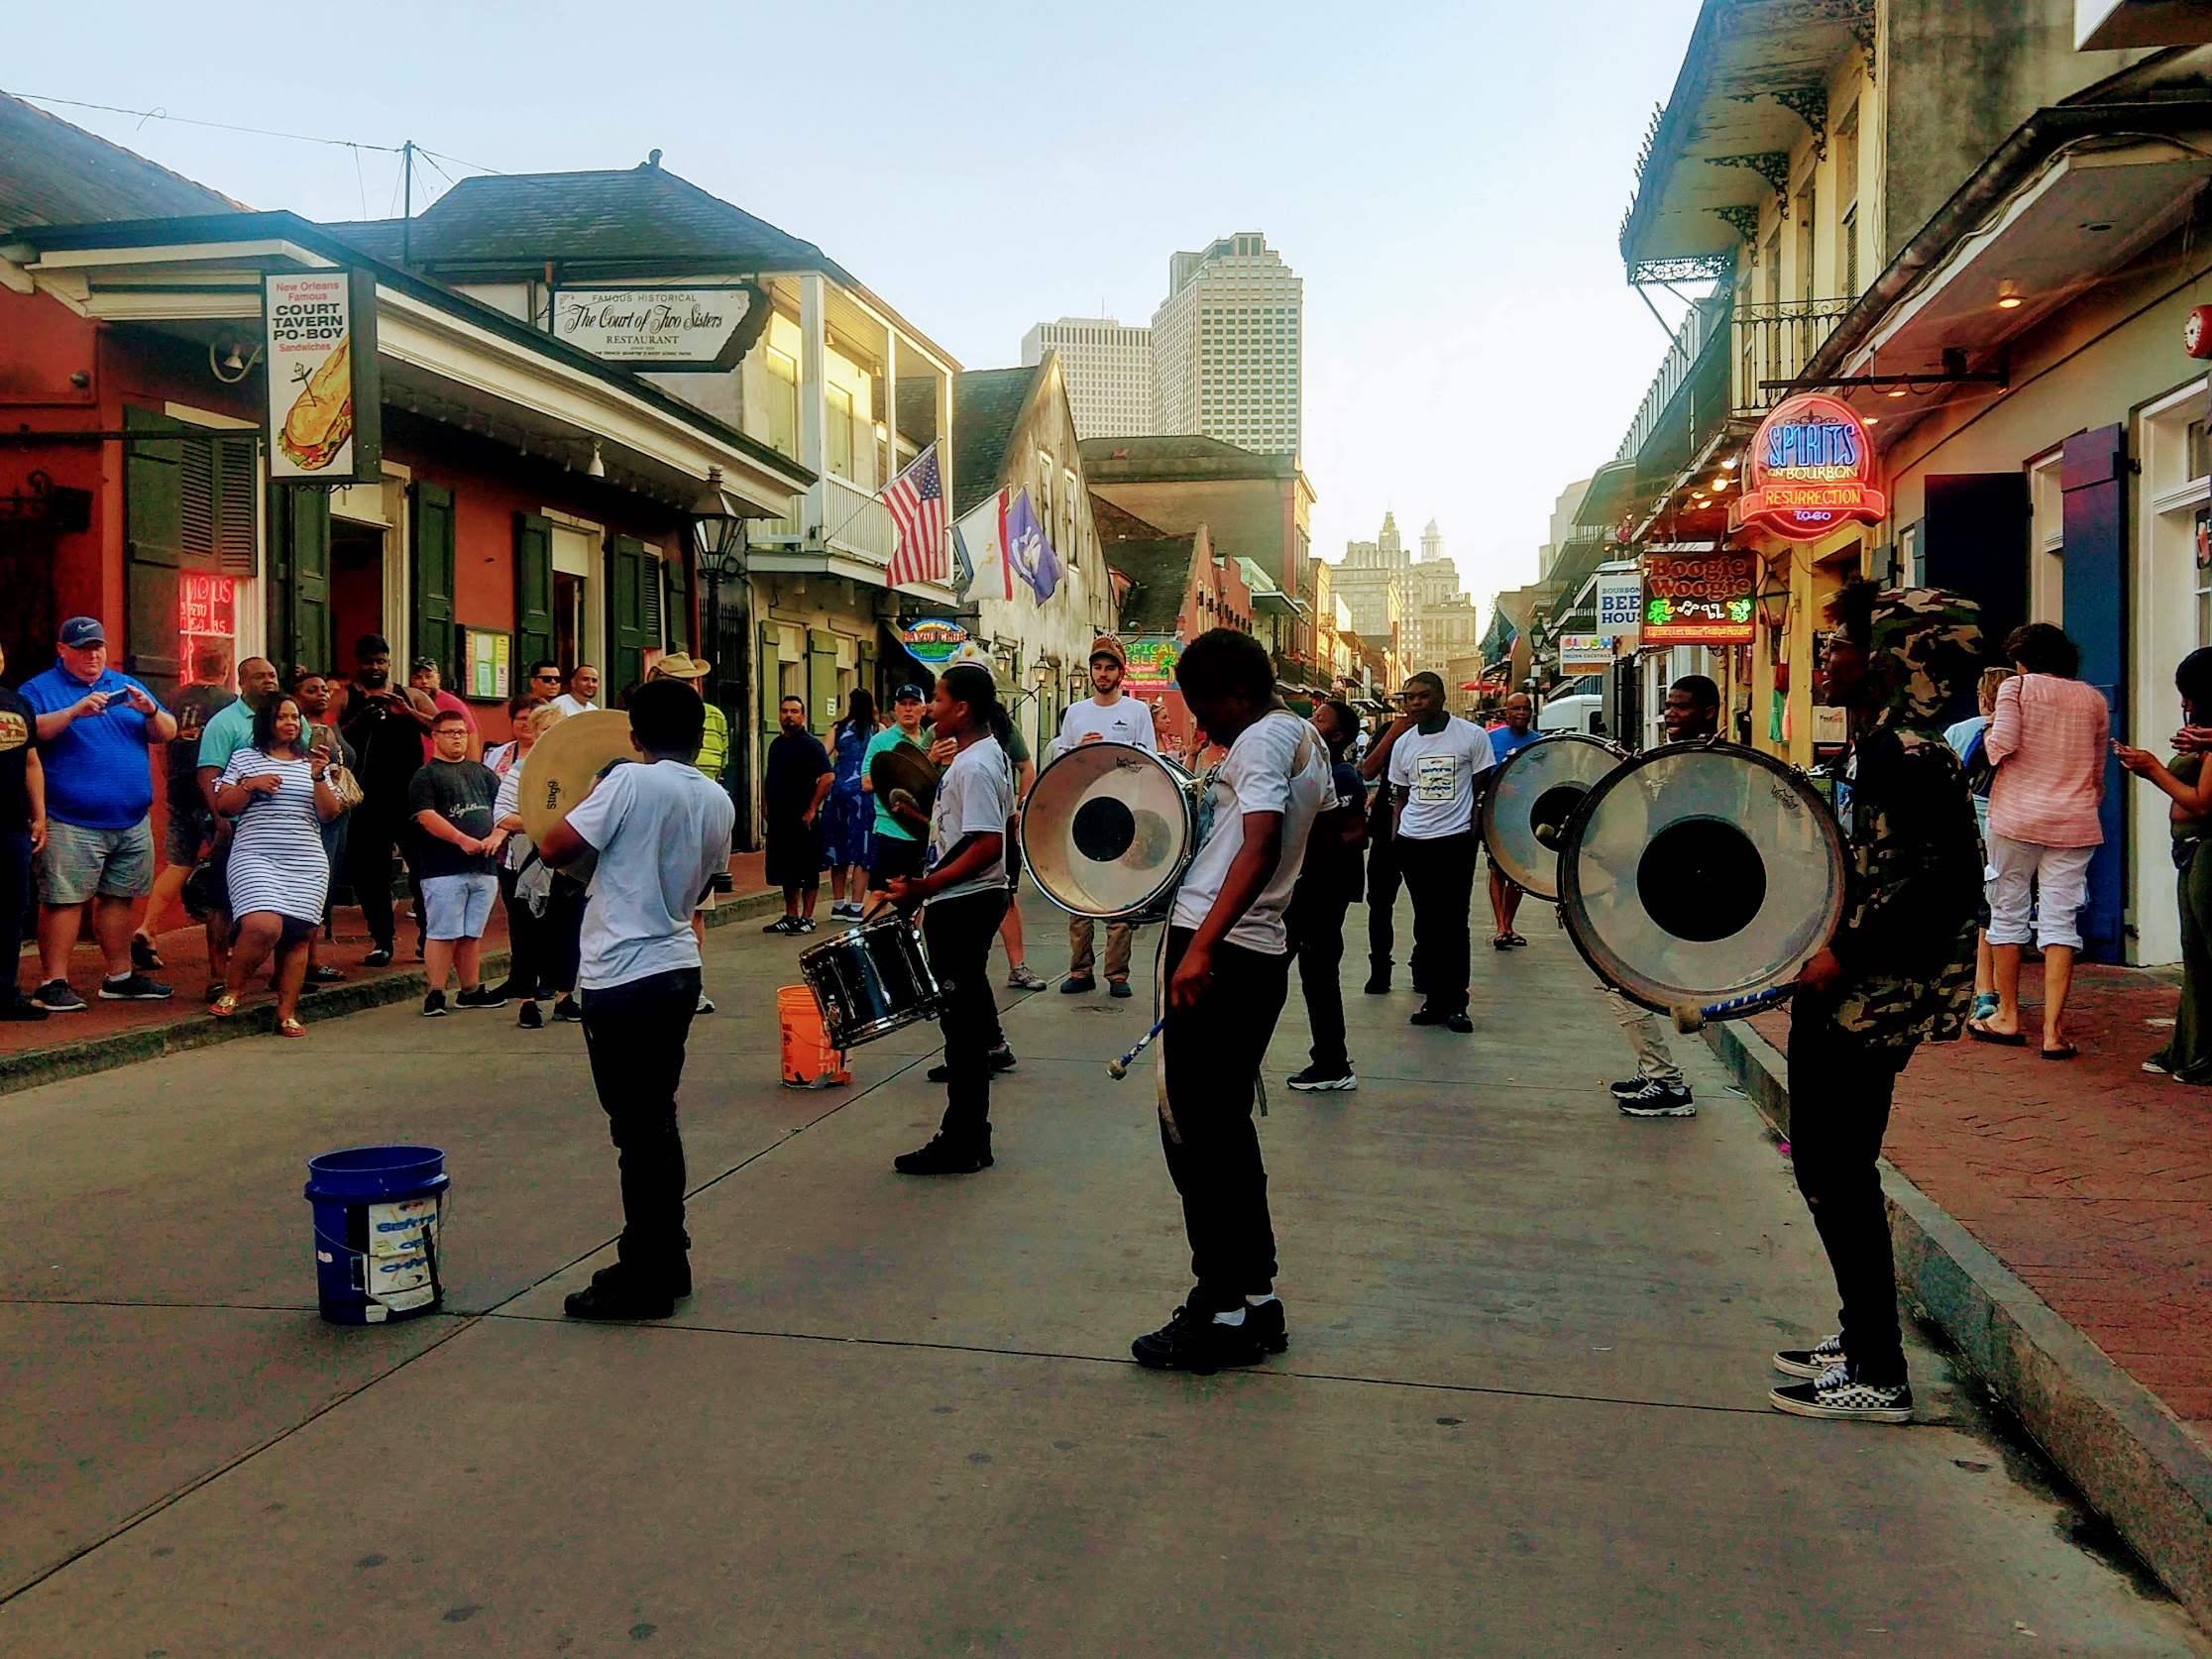 Street performers/ Drum line performing on Bourbon Street one afternoon in New Orleans Louisiana.